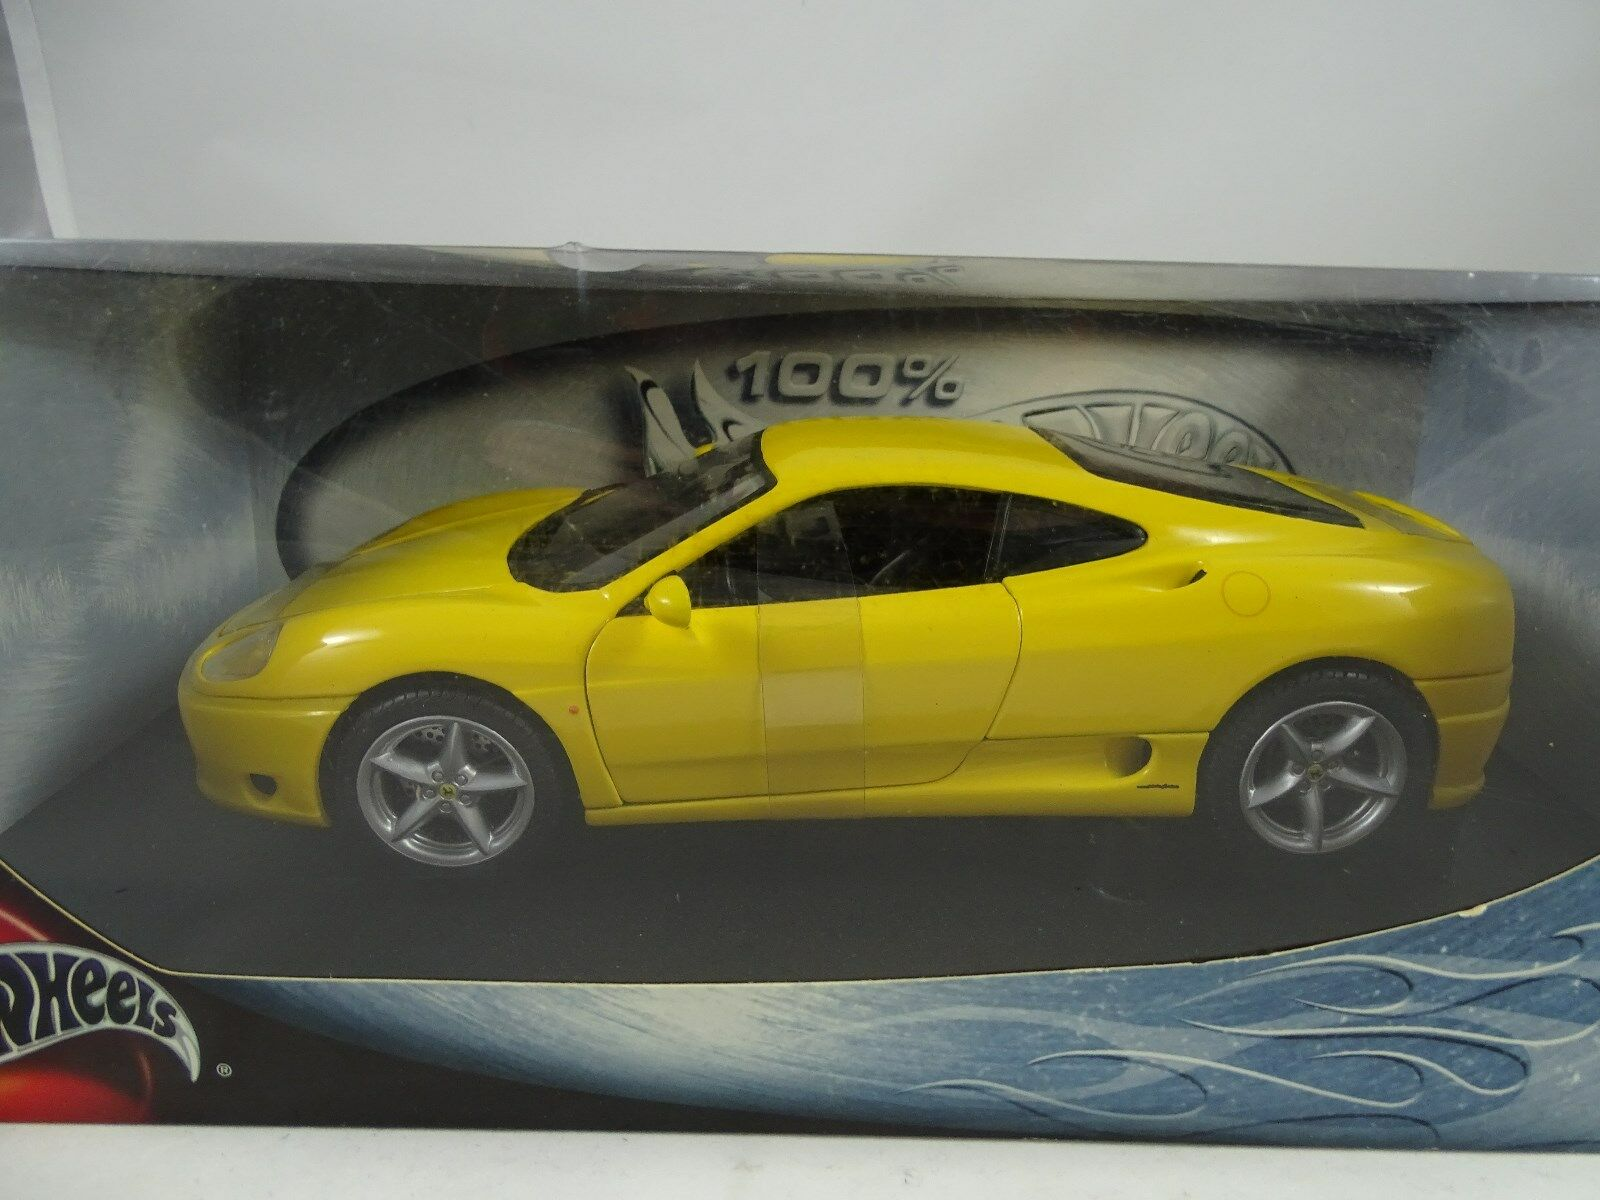 1:18 HOT WHEELS-FERRARI 360 Modena YELLOW GIALLO-rarità §